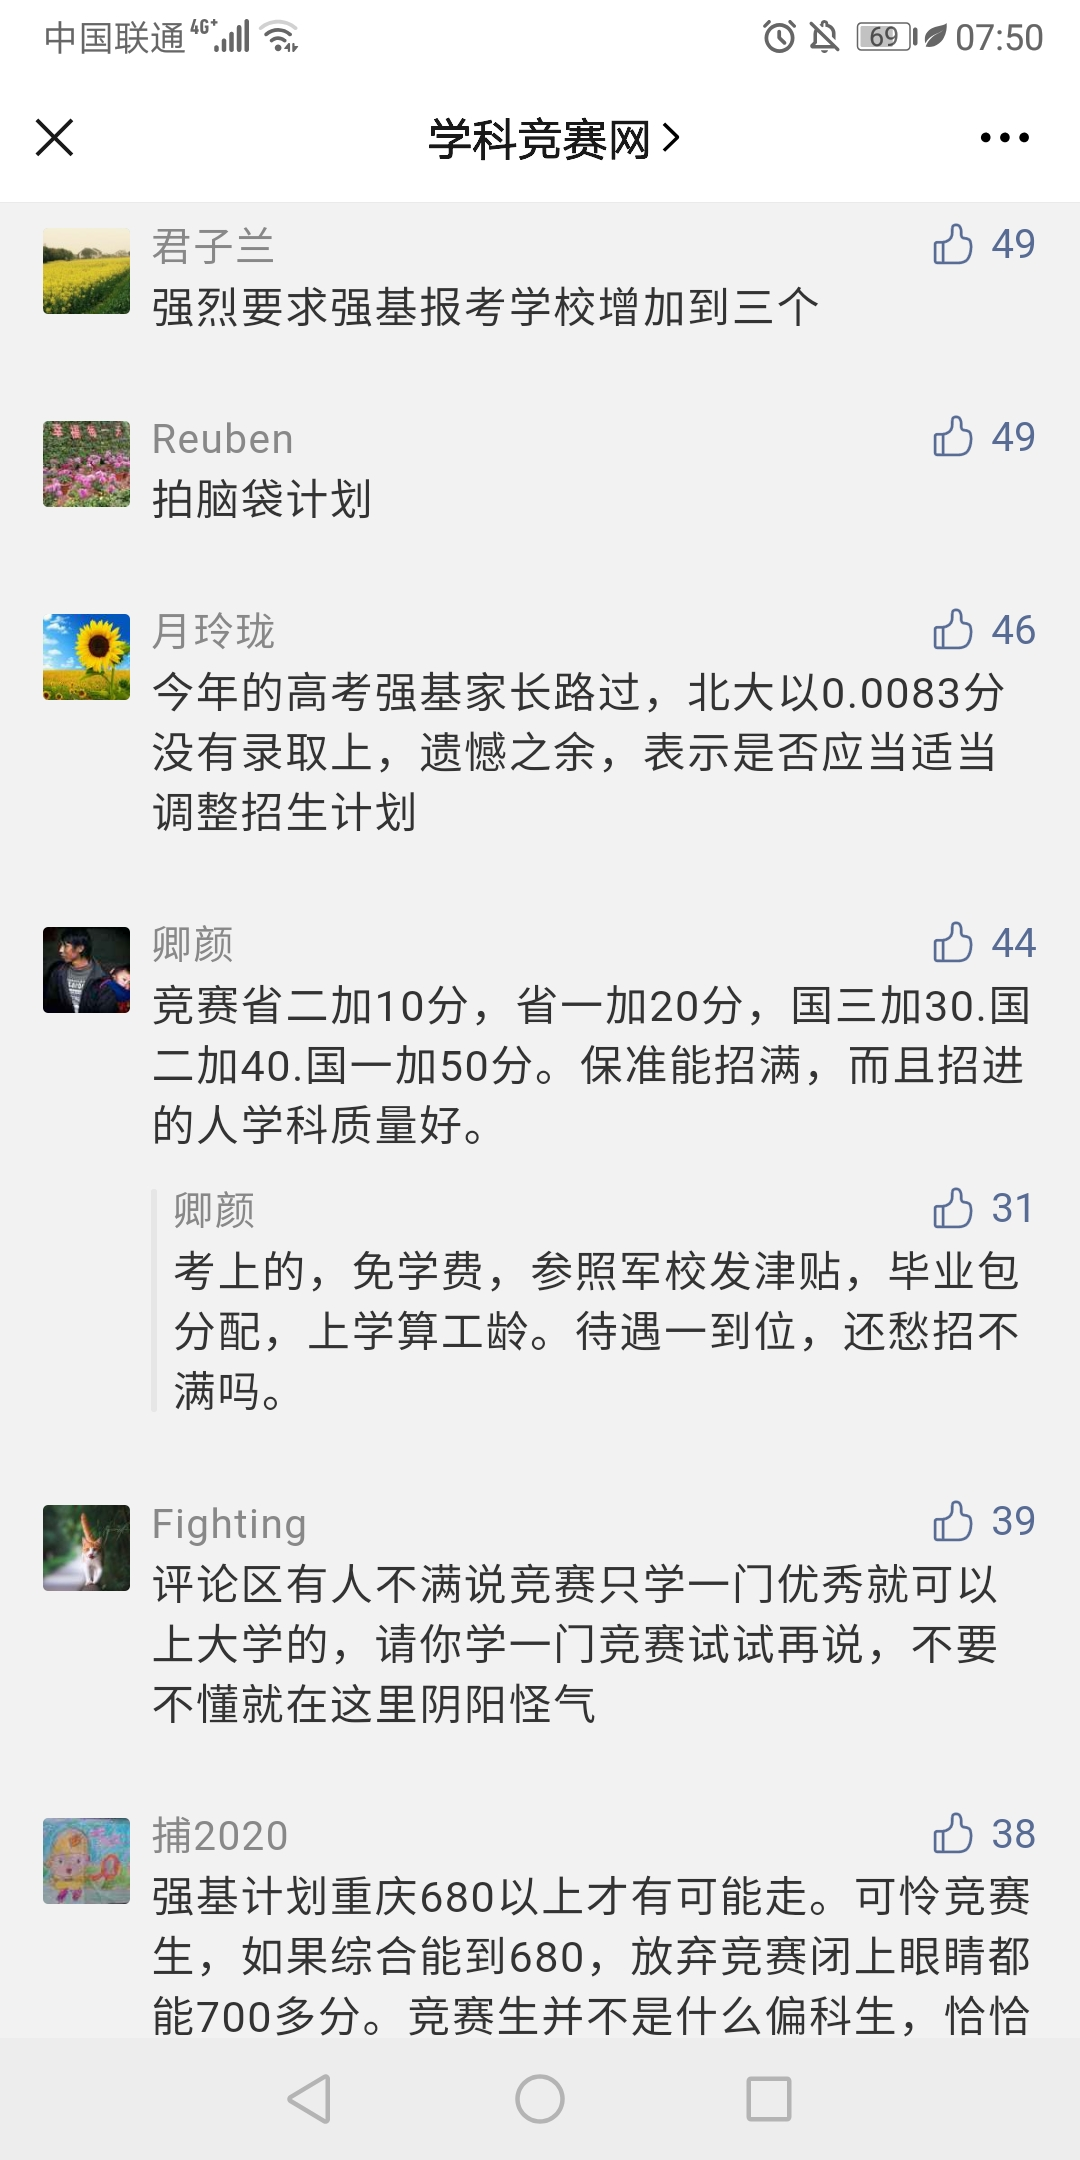 Screenshot_20200915_075017_com.tencent.mm.jpg